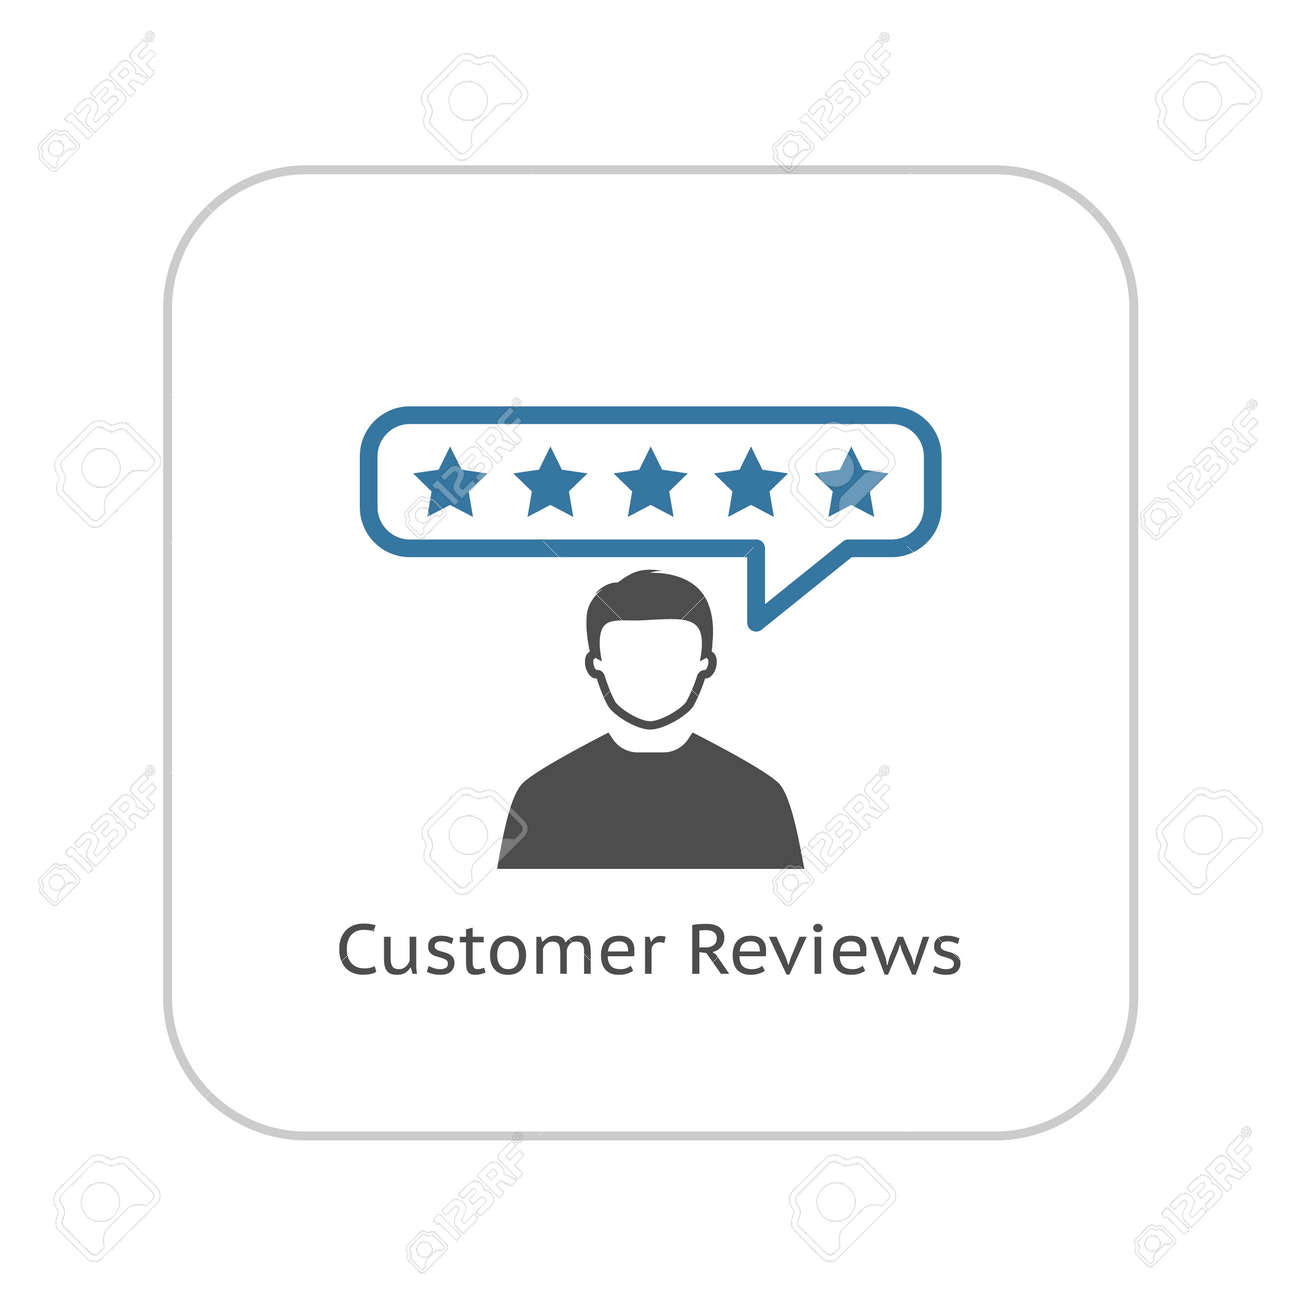 Customer Reviews Icon. Flat Design. Business Concept. Isolated Illustration. - 49754512